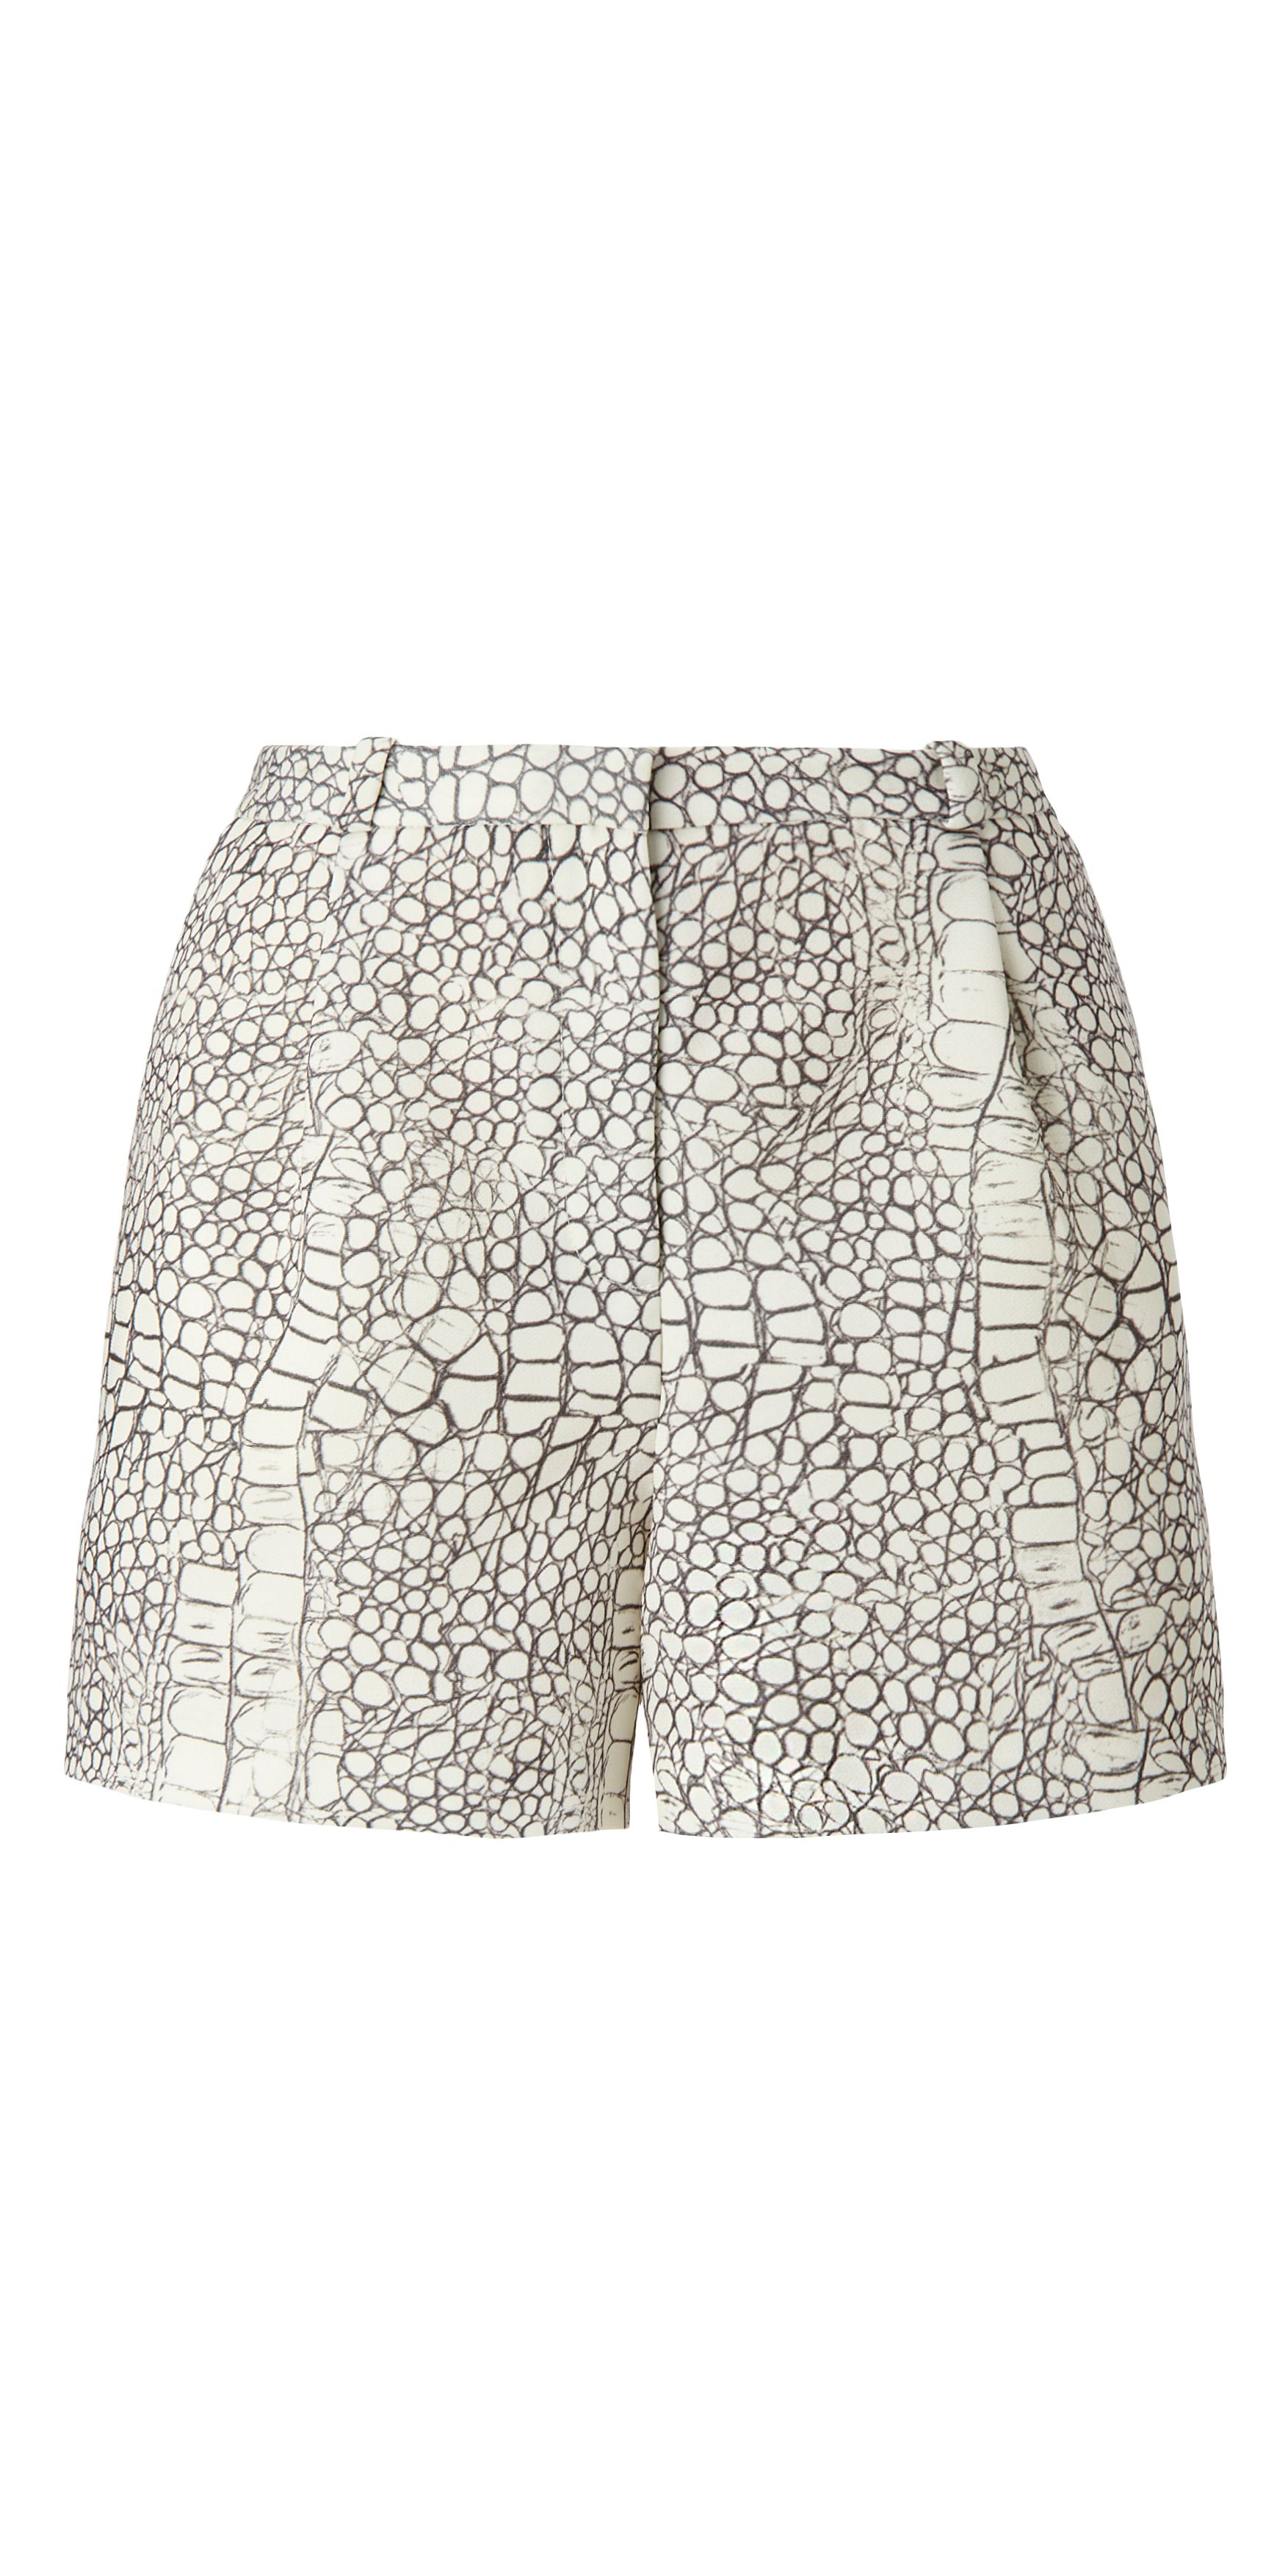 Dragon Skin Print Shorts